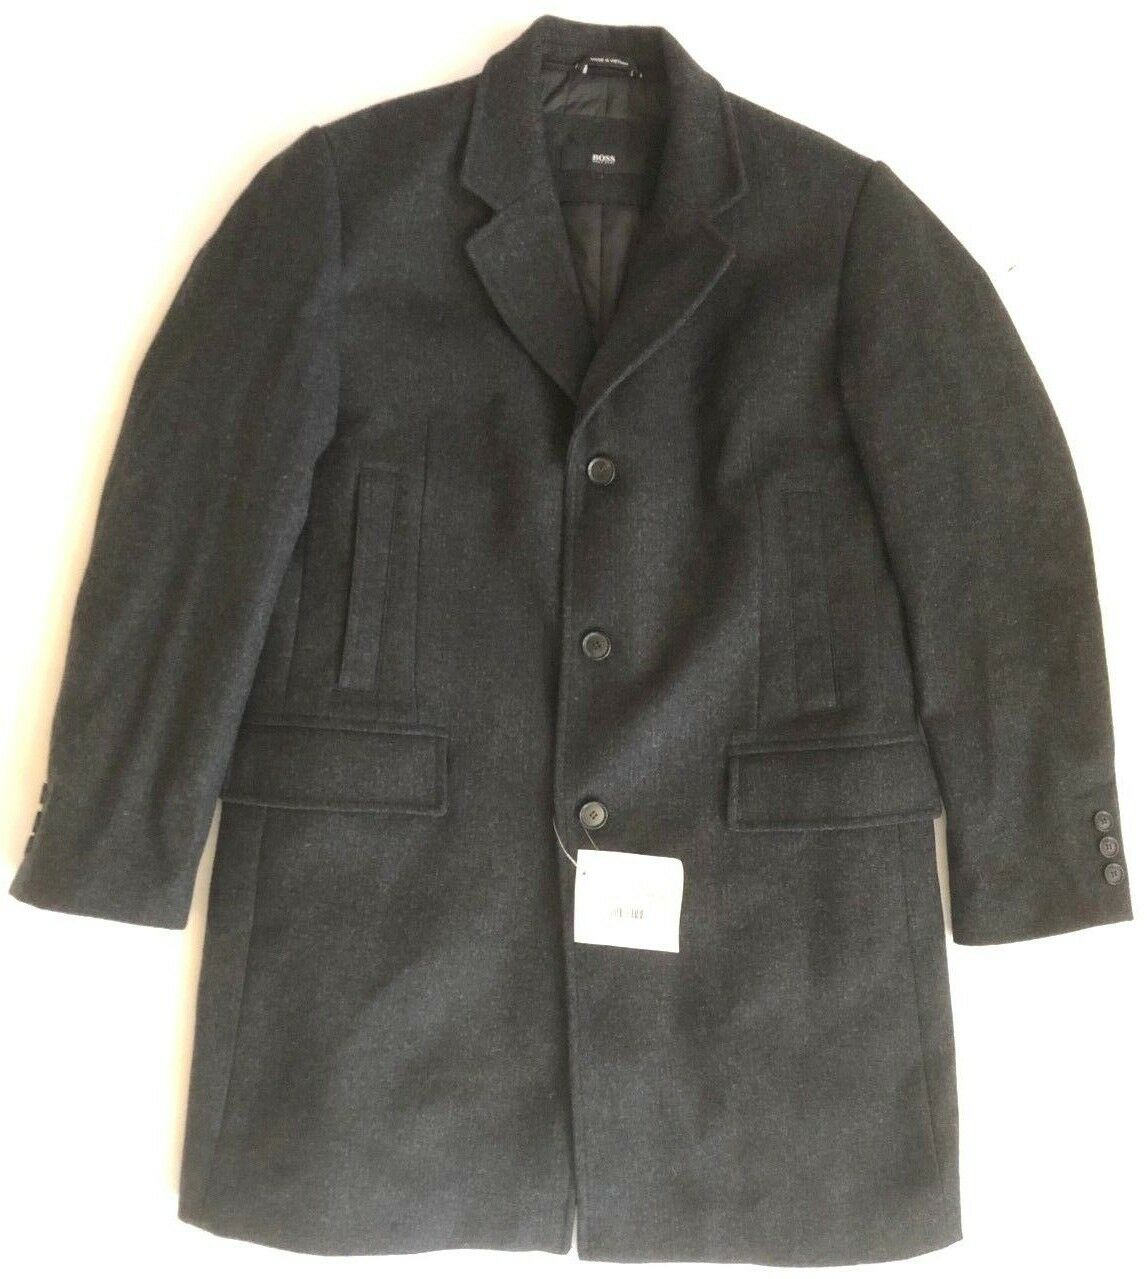 NWT Hugo Boss  845  virgin wool style 50169 winter sports trench topcoat mens 40R  online discount